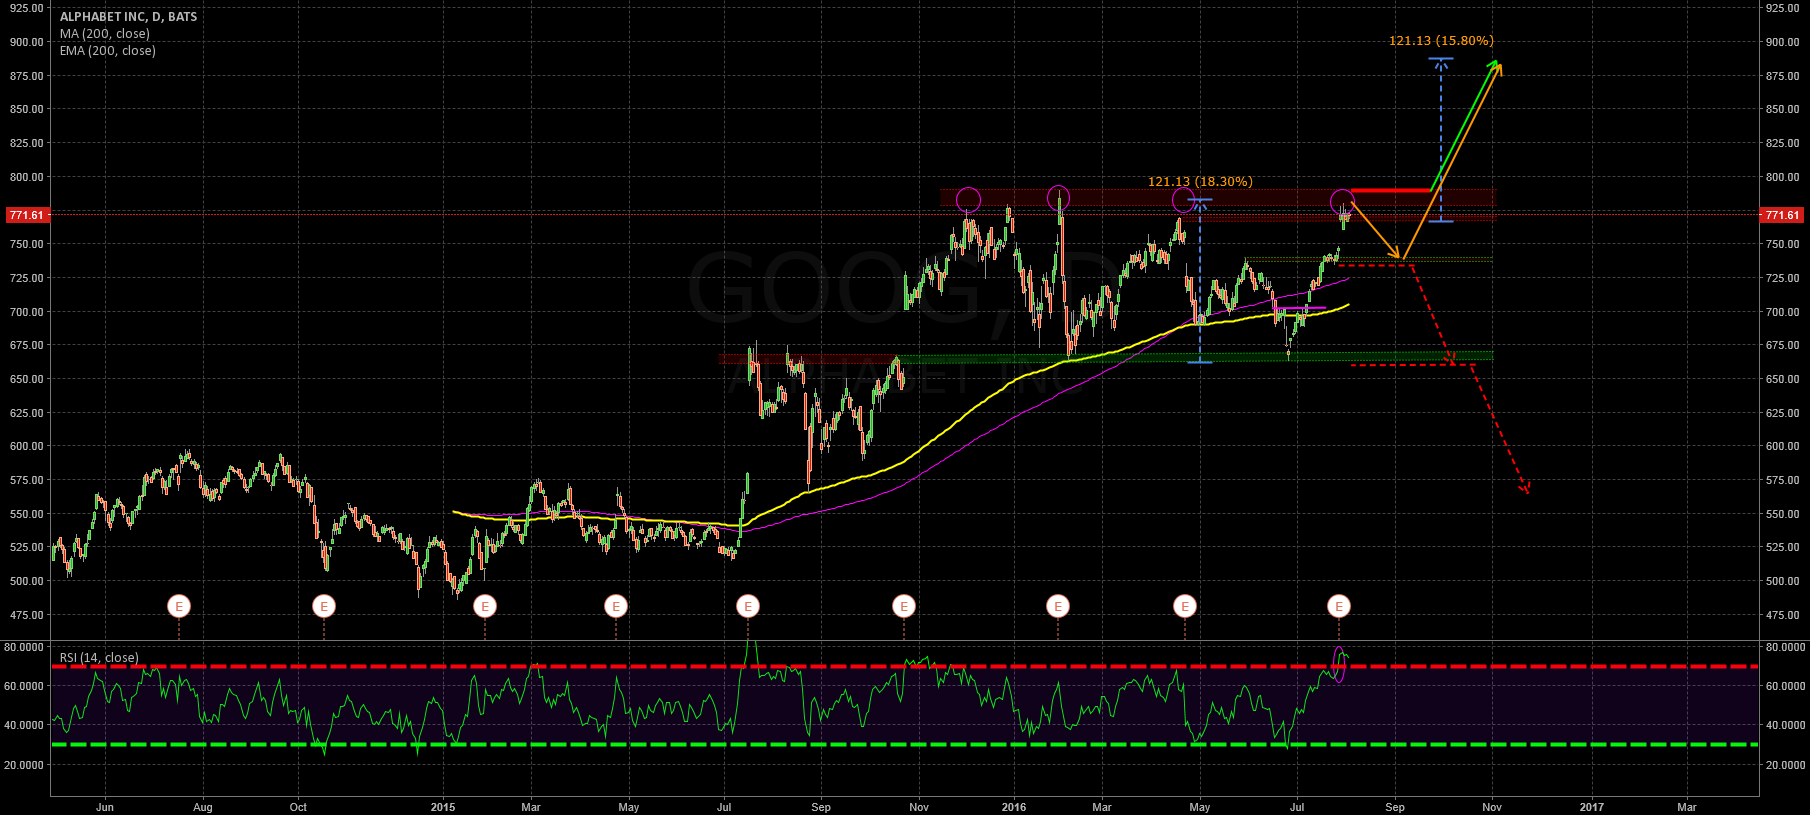 Consolidation before the Big BO? Next station 880$?